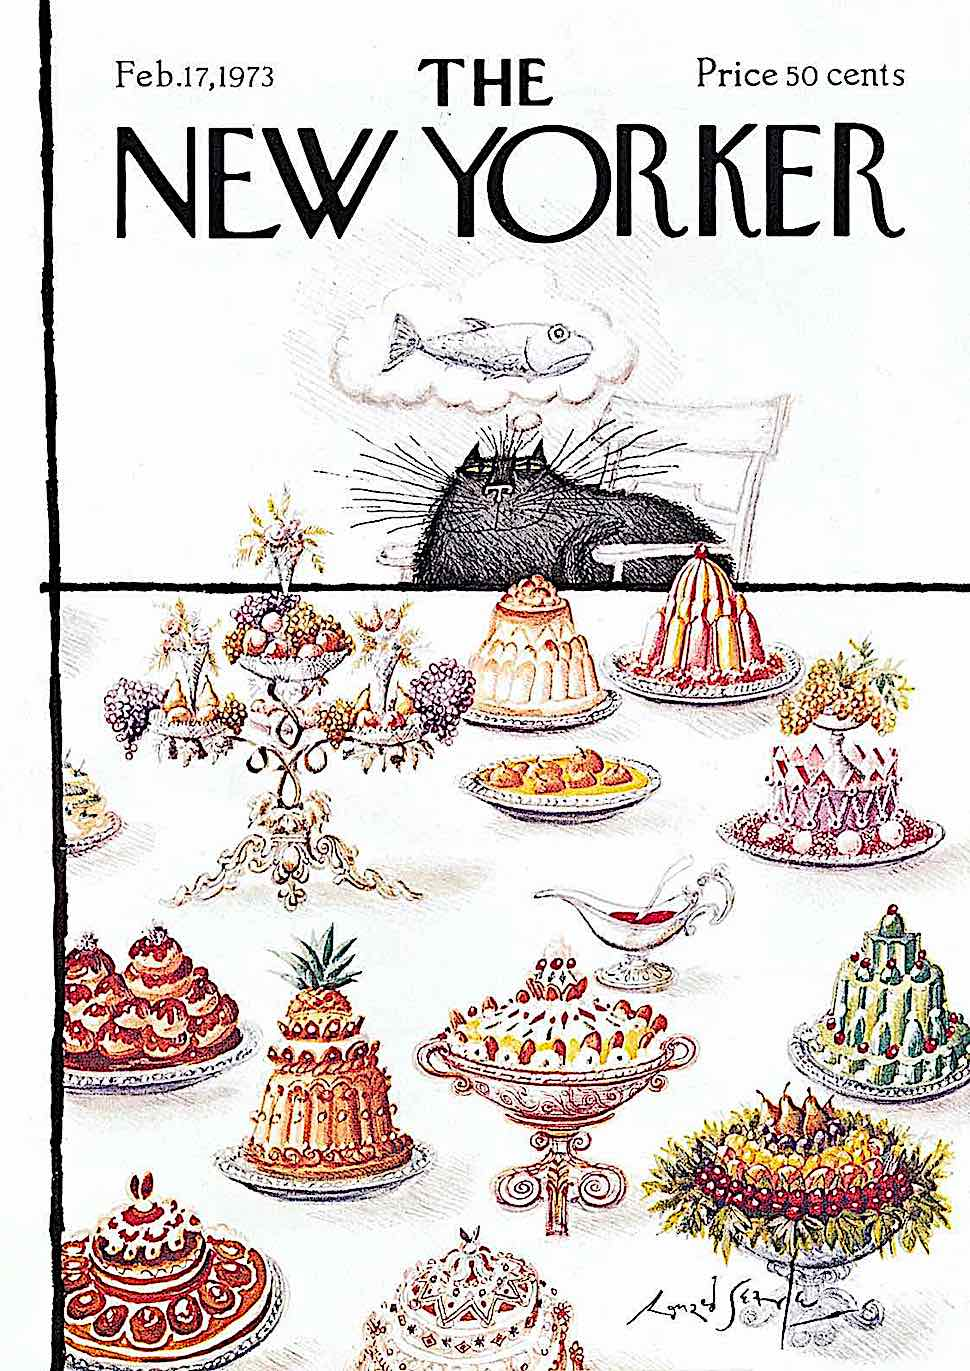 a Ronald Searle illustration for The new Yorker Feb. 17 1973